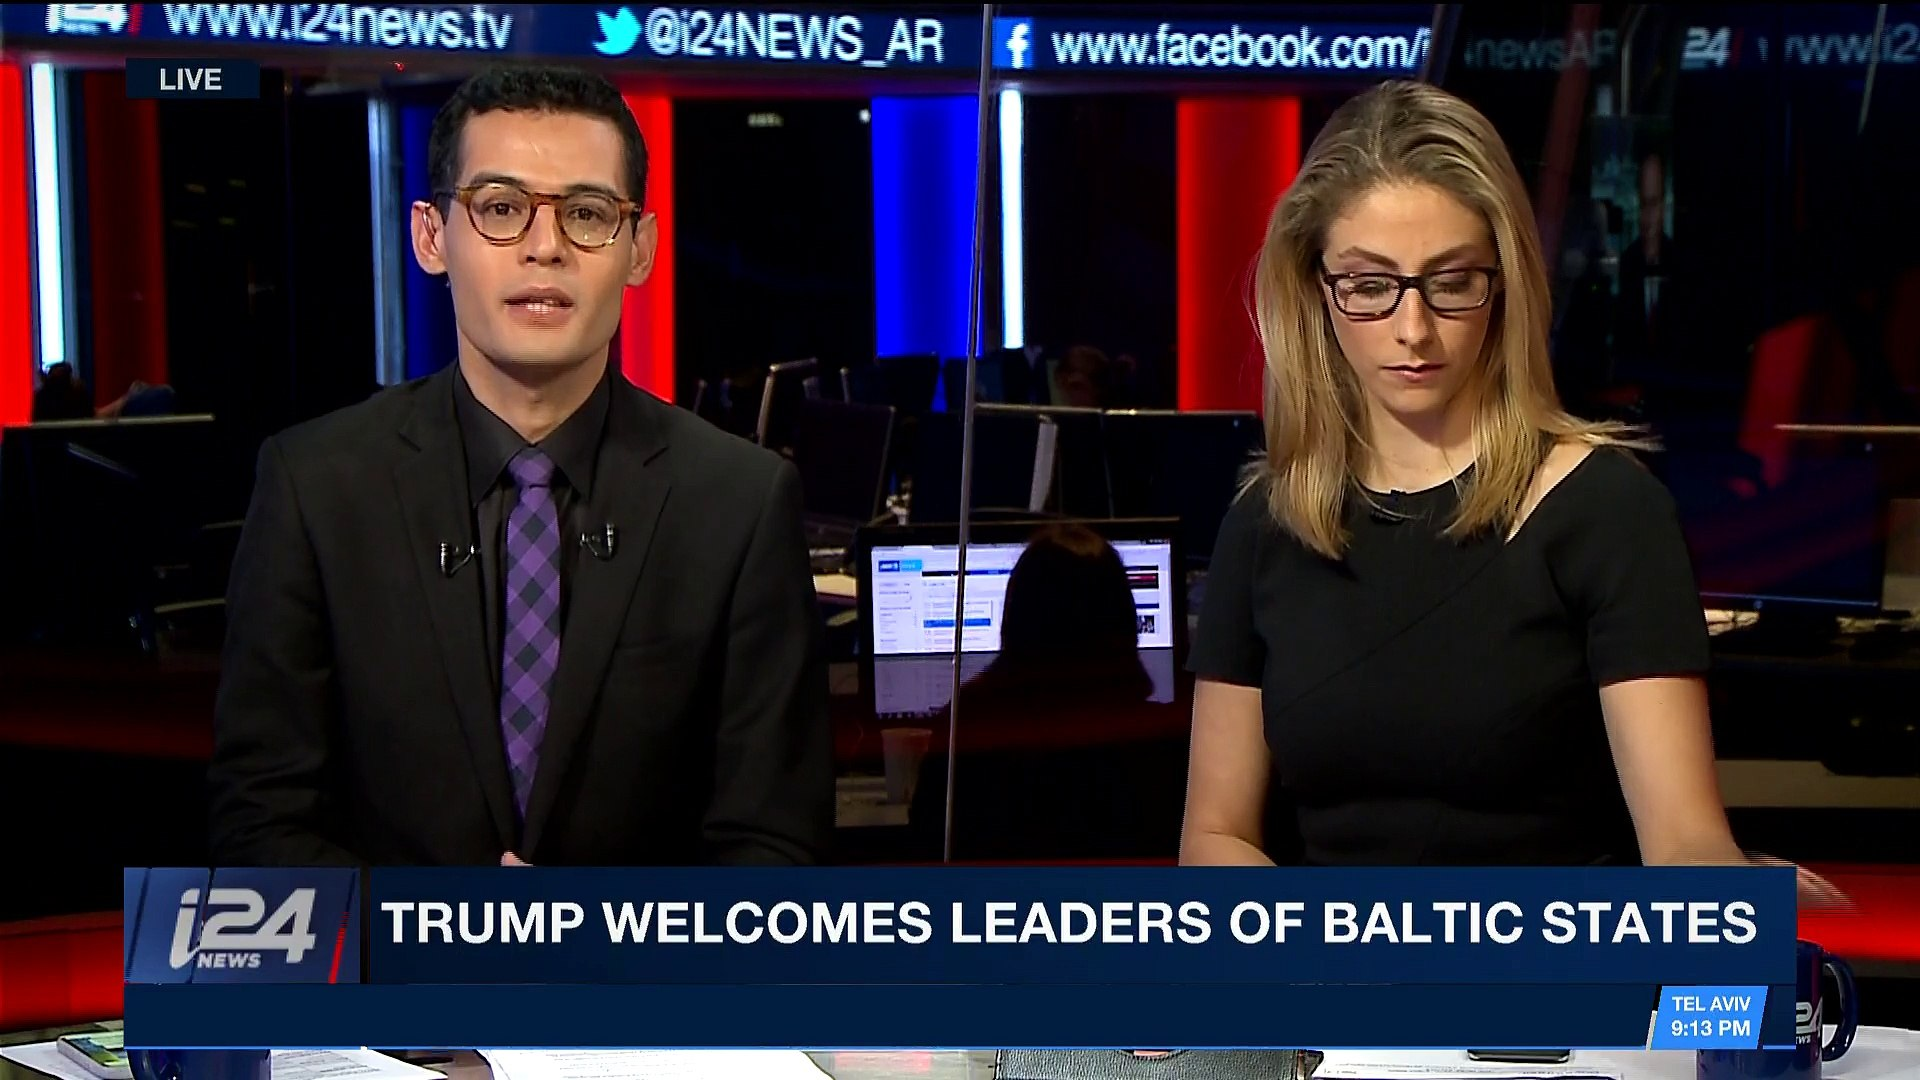 THE RUNDOWN | Saudi crown prince speaks with 'The Atlantic' | Tuesday, April 3rd  2018